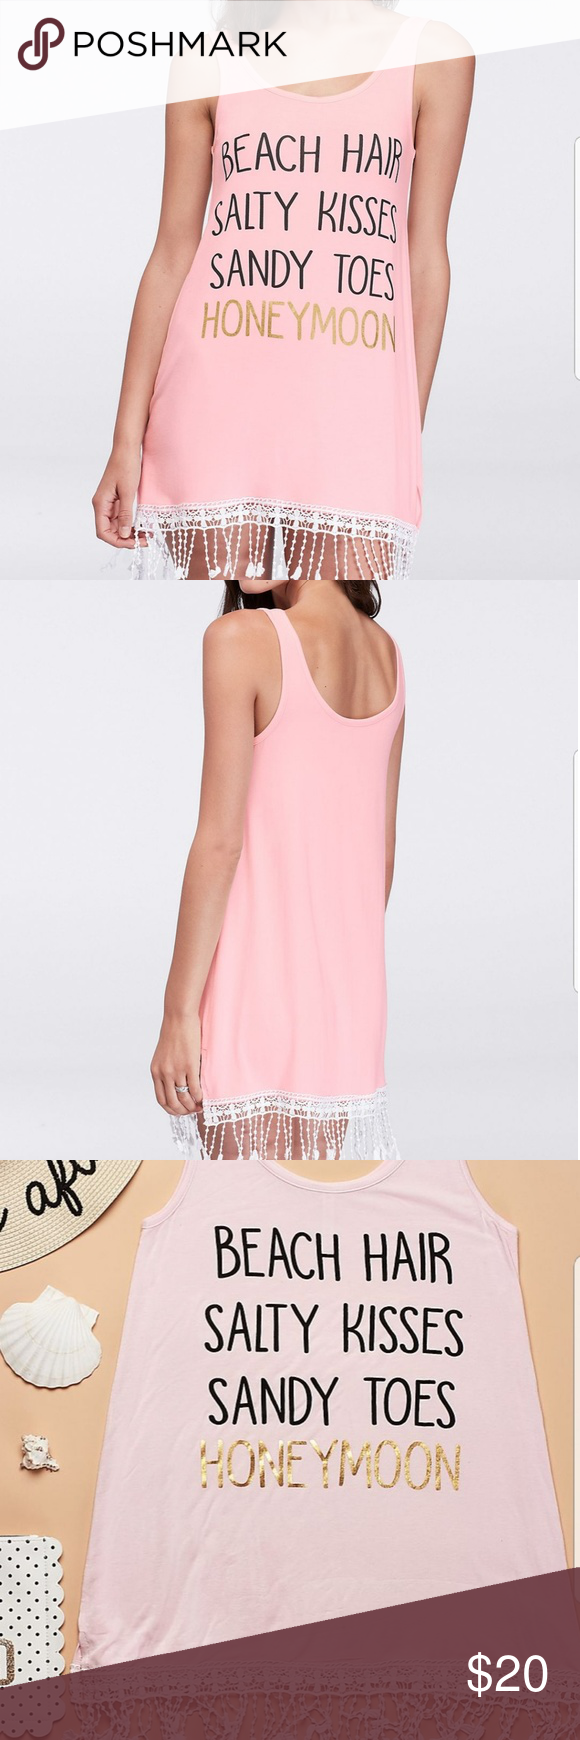 Crochet-Trimmed Honeymoon Beach Cover Up Beach hair, salty kisses, and sandy toes? Sounds like the perfect honeymoon! This is the perfect honeymoon beach cover up, made with crochet-fringed jersey.  David's Bridal exclusive, recieved as gift and never used. Rayon, spandex David's Bridal Swim Coverups #beachhoneymoonclothes Crochet-Trimmed Honeymoon Beach Cover Up Beach hair, salty kisses, and sandy toes? Sounds like the perfect honeymoon! This is the perfect honeymoon beach cover up, made with c #beachhoneymoonclothes